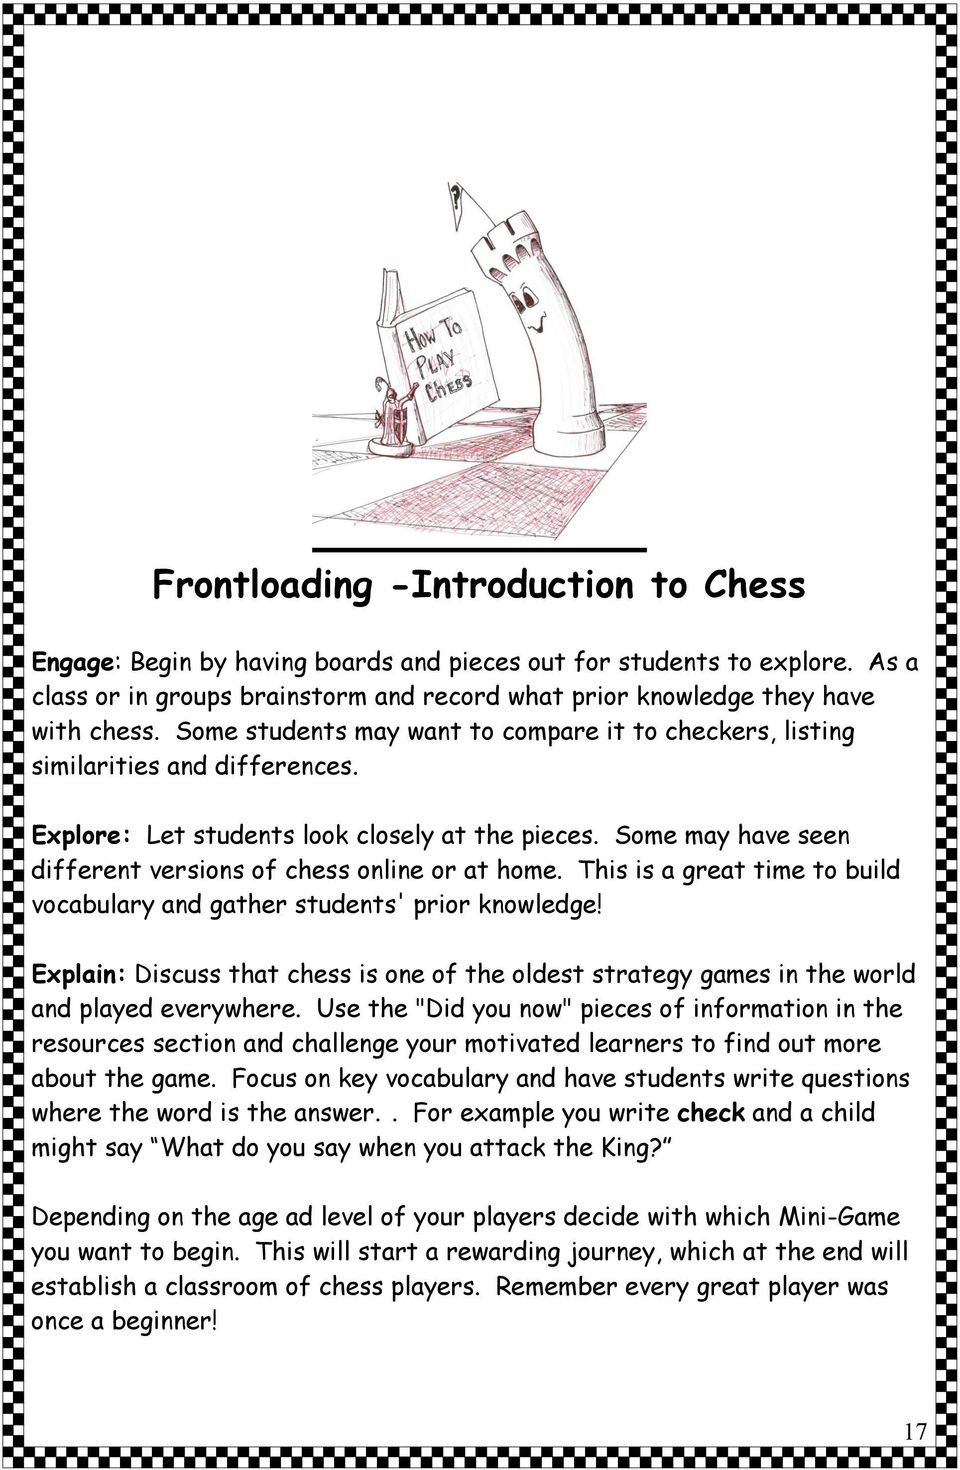 Some may have seen different versions of chess online or at home. This is a great time to build vocabulary and gather students' prior knowledge!